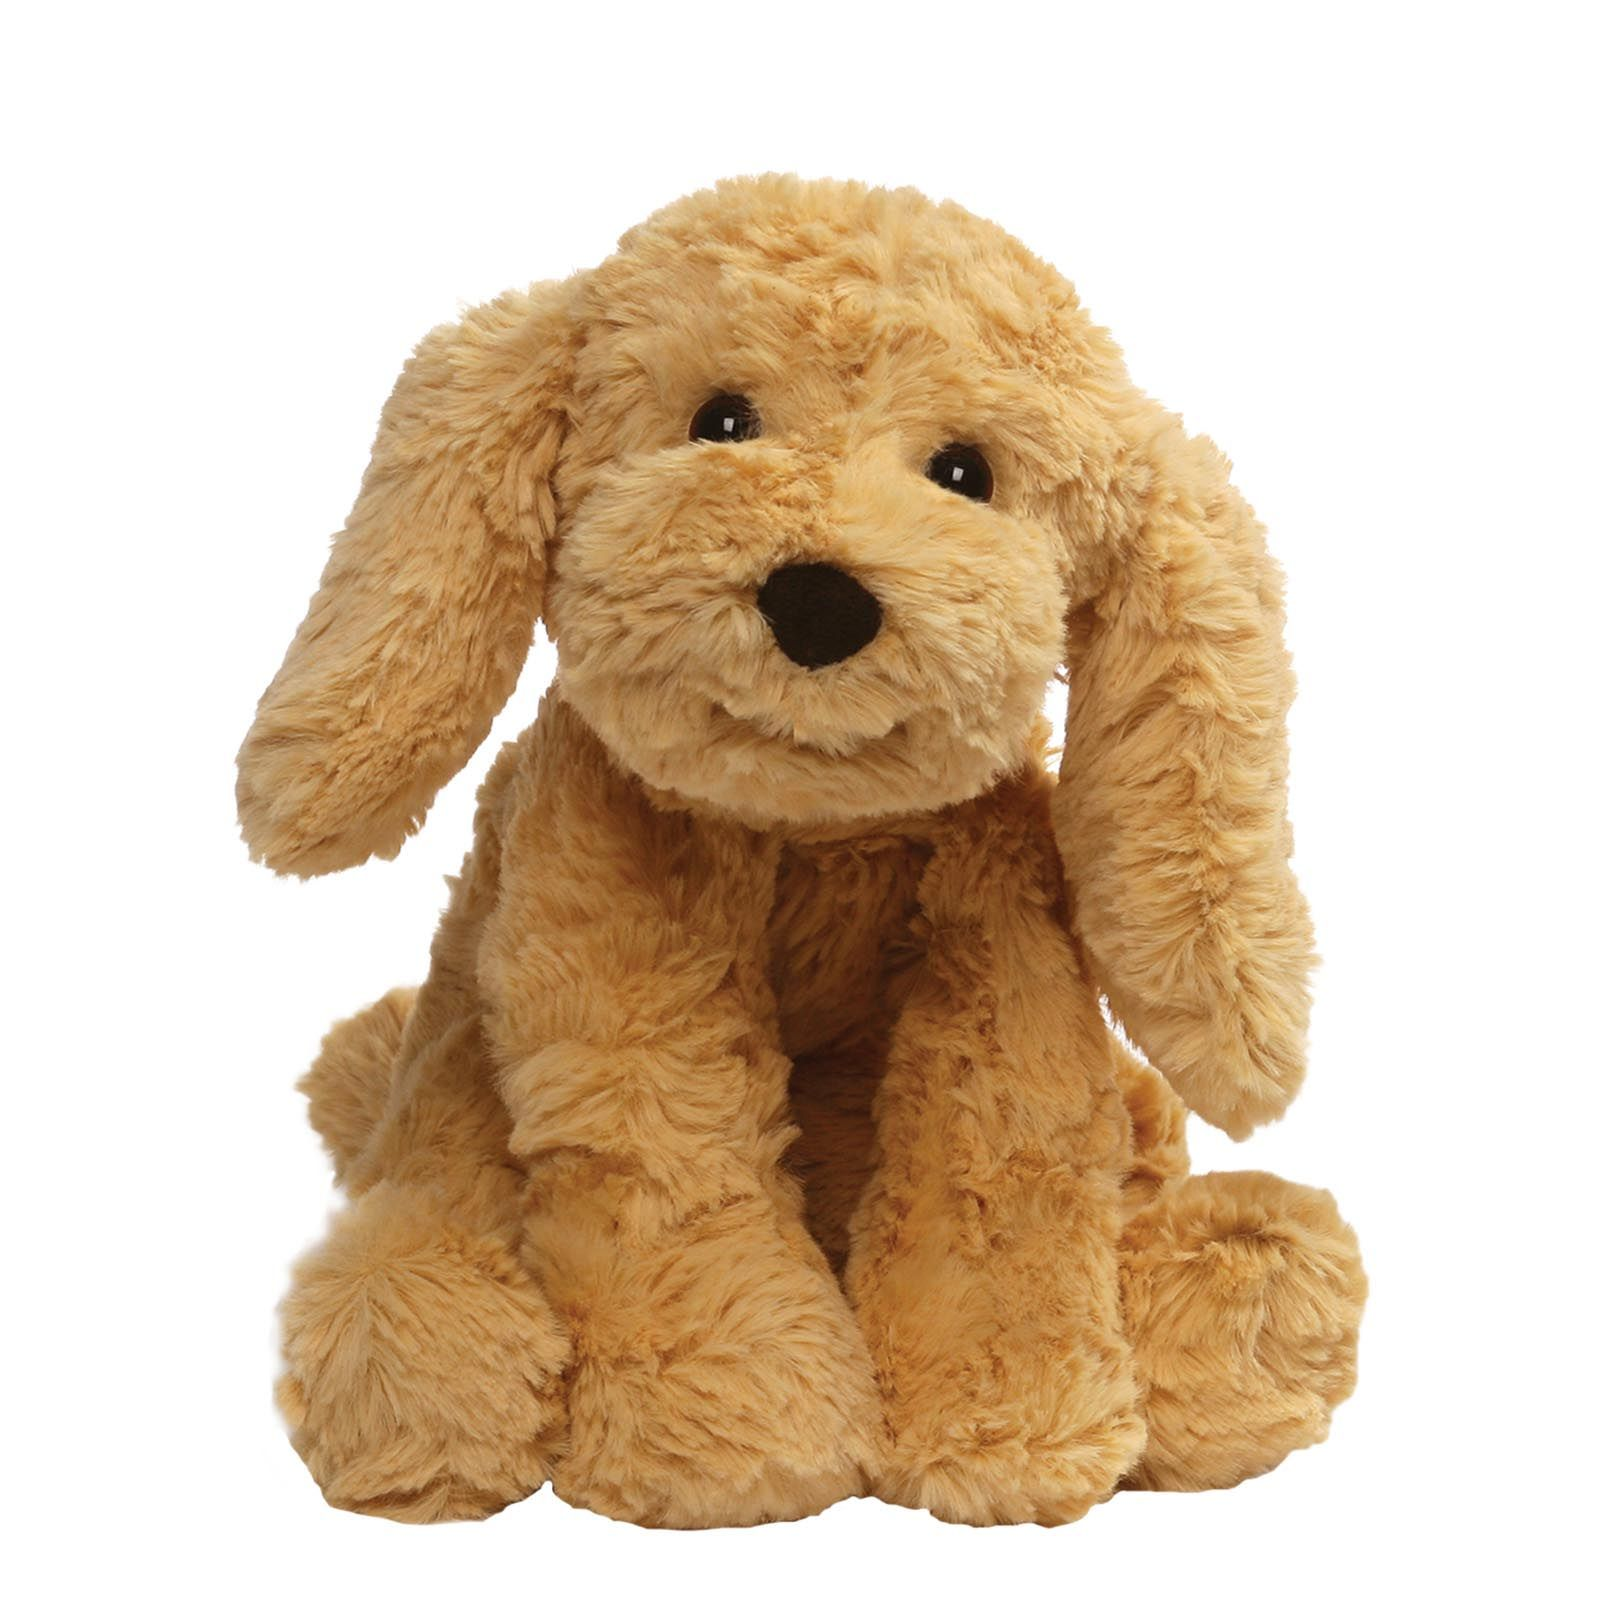 4059965 Cozys Dog Small Dog stuffed animal, Cozy dog